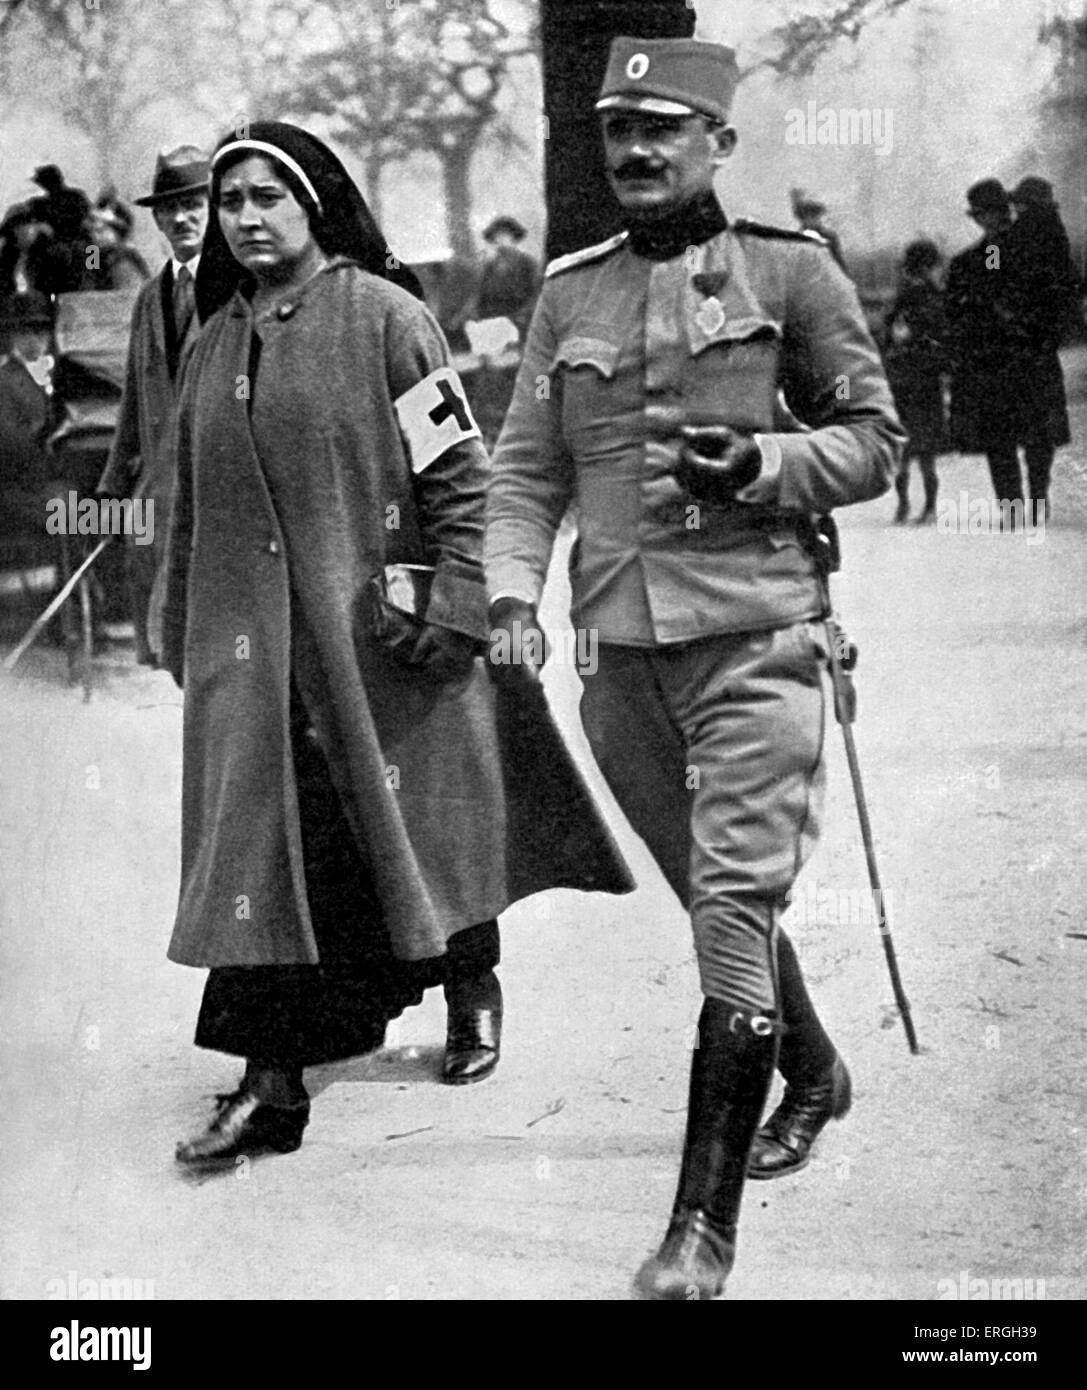 Prince Alexander of Serbia in Hyde Park, London during World War 1. April 1916. Accompanied by a Serbian nurse. - Stock Image